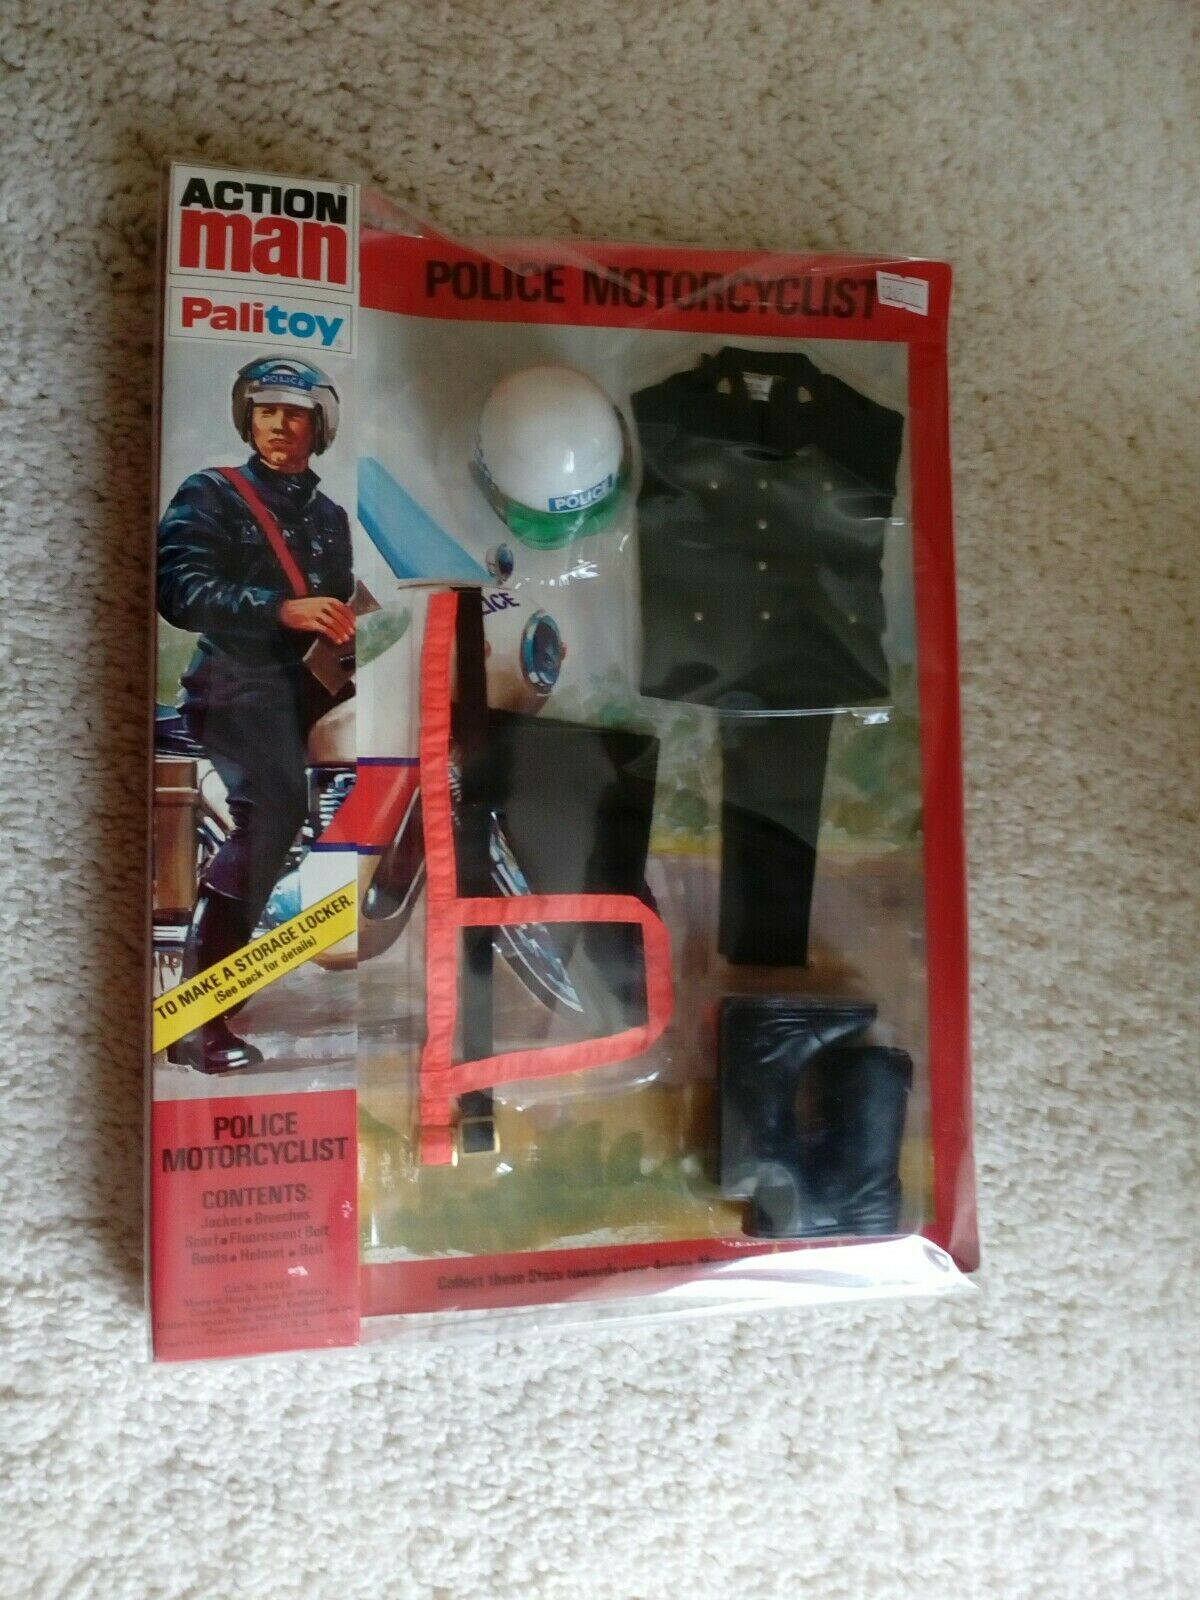 Palitoy Original Vintage Action Man Police Motorcyclist - Mint on Card